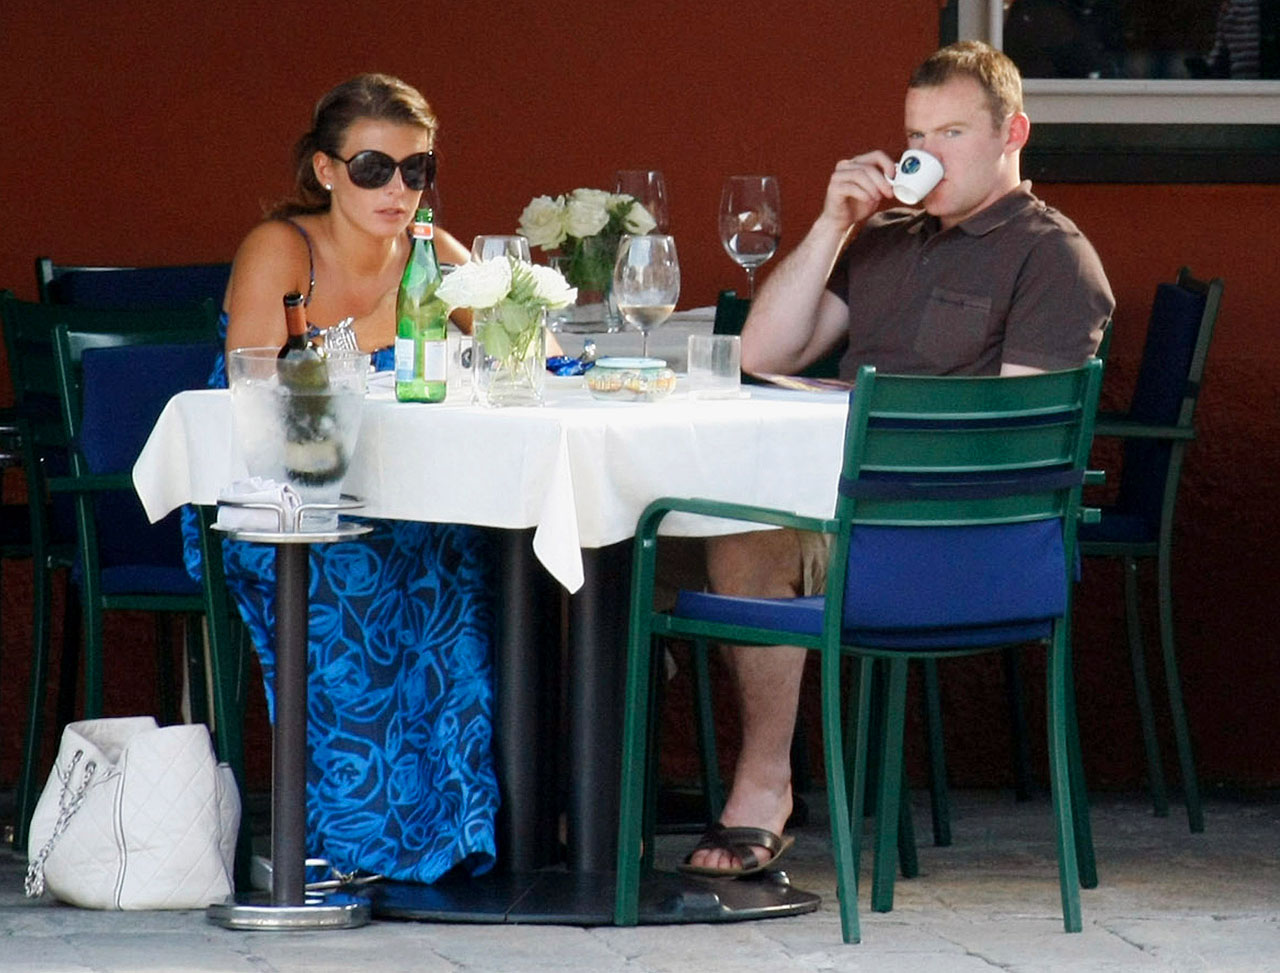 Rooney and fiancee Coleen eat at a restaurant in the main square of Portofino on June 9, 2008 during a trip to Italy.